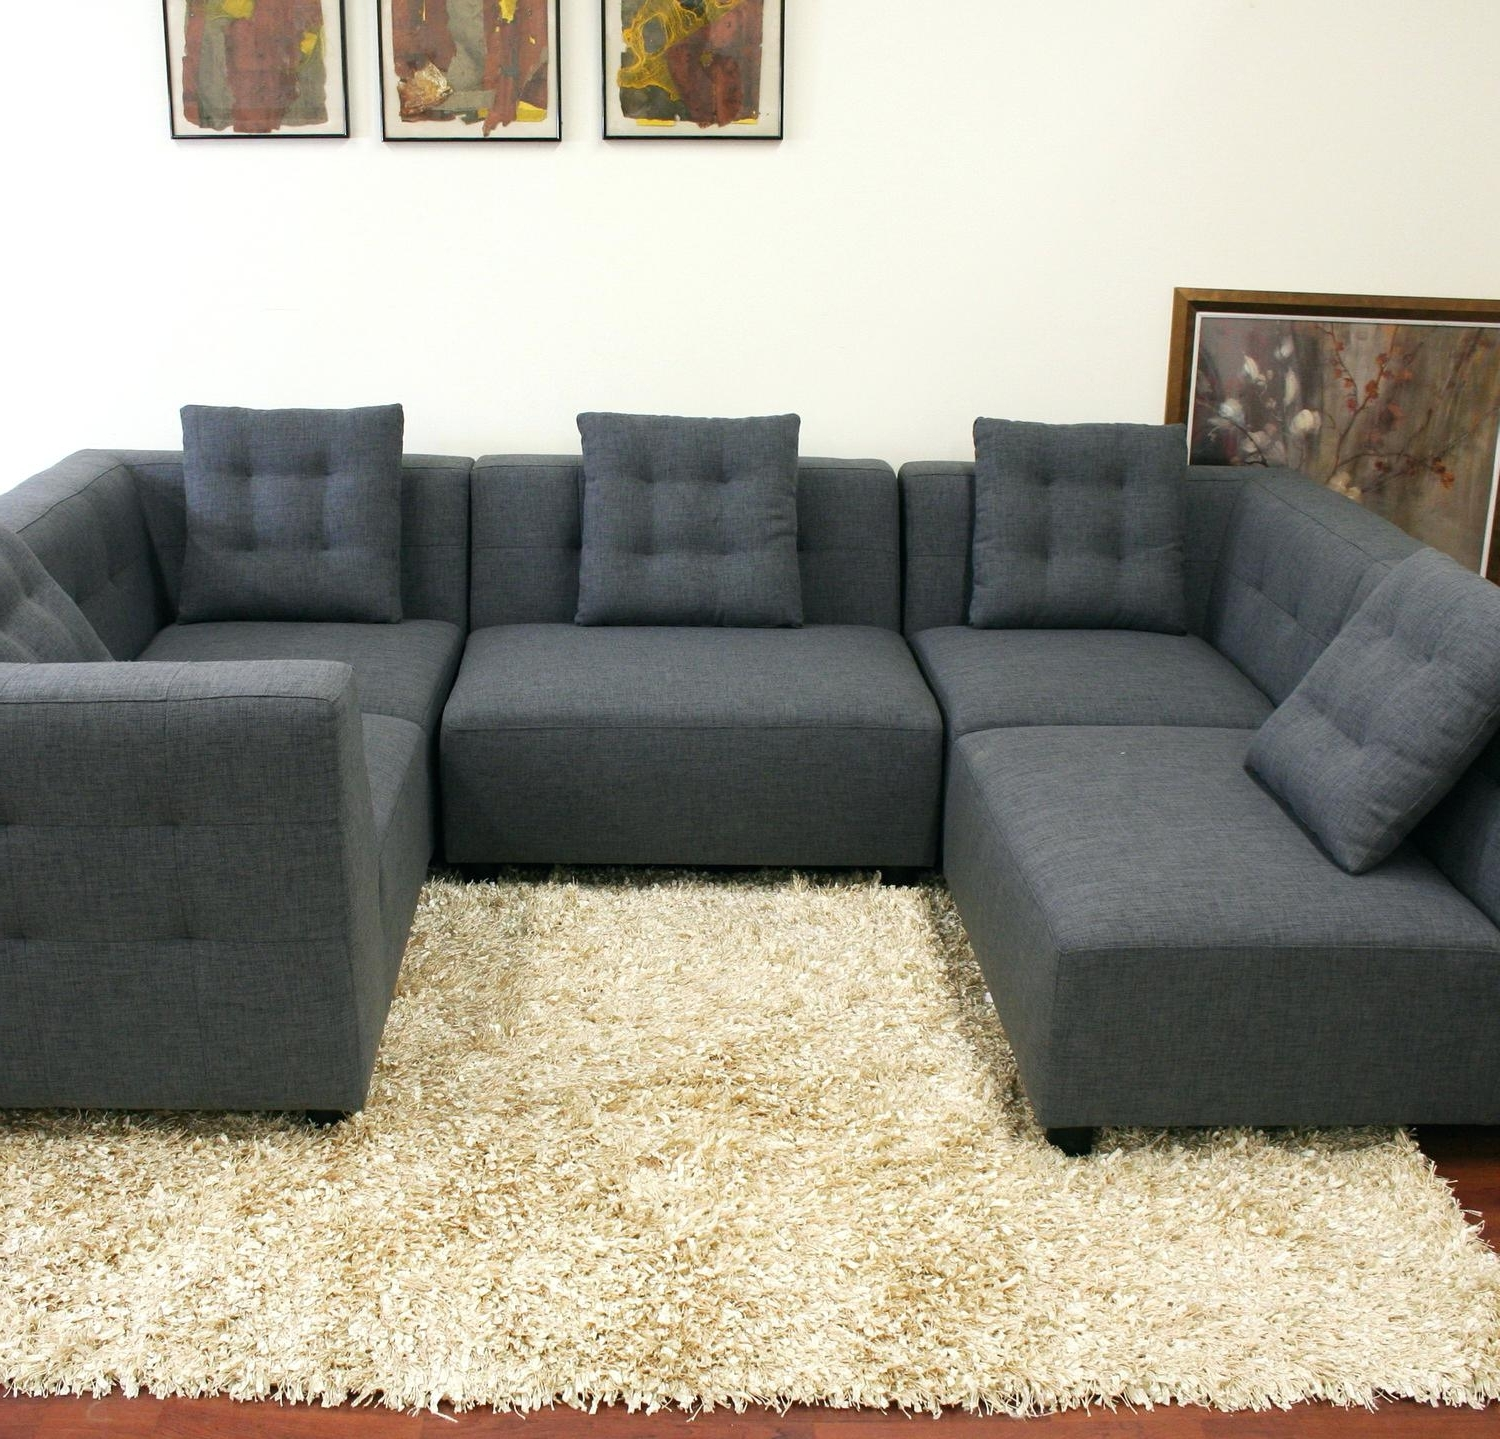 Trendy Sectional Sofas For Sale Sofa Liquidation Toronto Used In Couch Throughout Kijiji Mississauga Sectional Sofas (View 3 of 15)